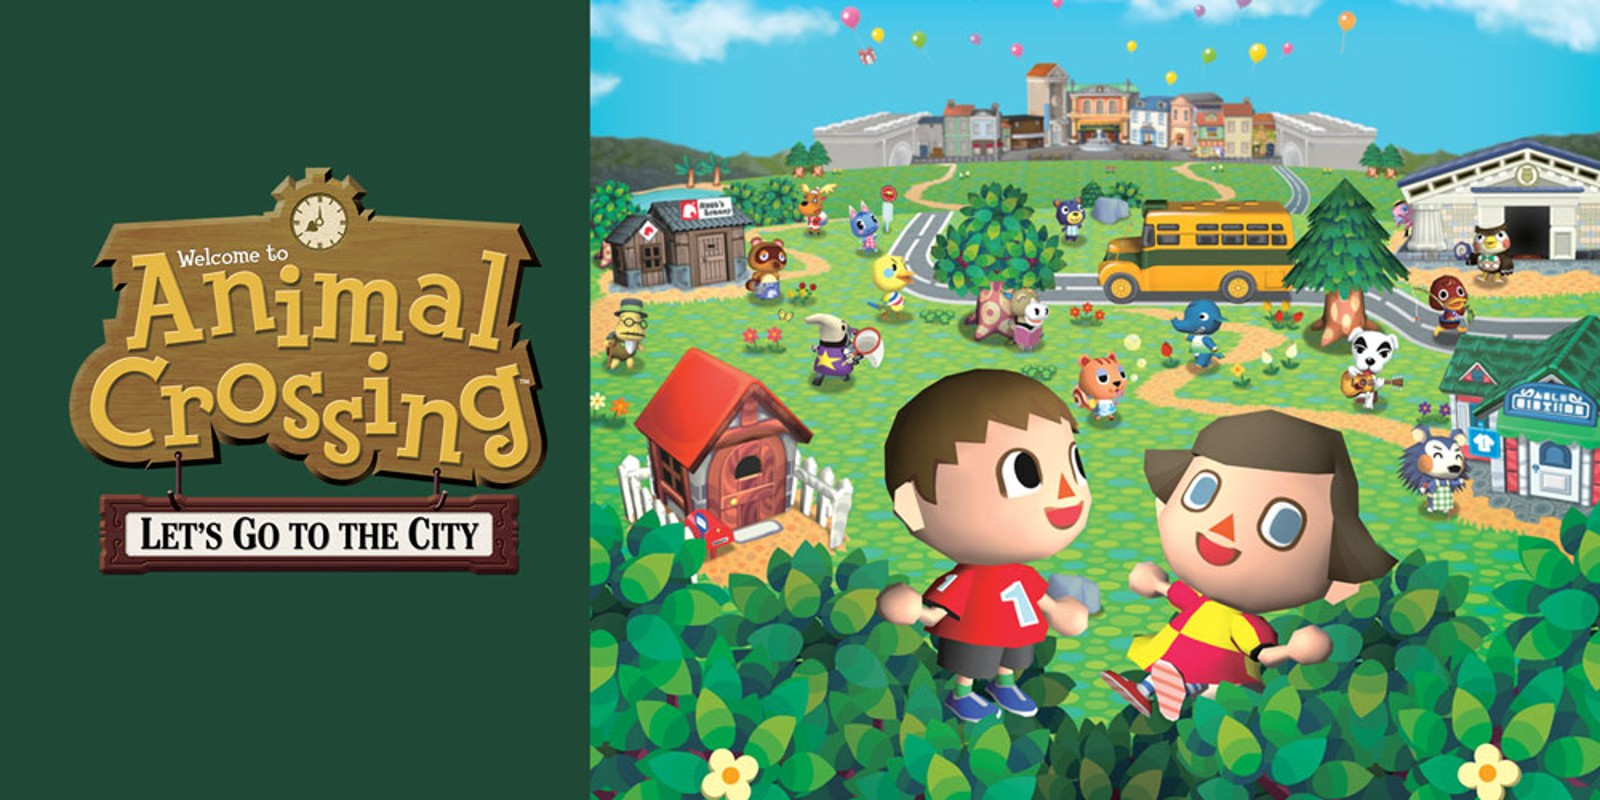 Animal Crossing Wild World Wallpaper Animal Crossing Let S Go To The City Wii Games Nintendo